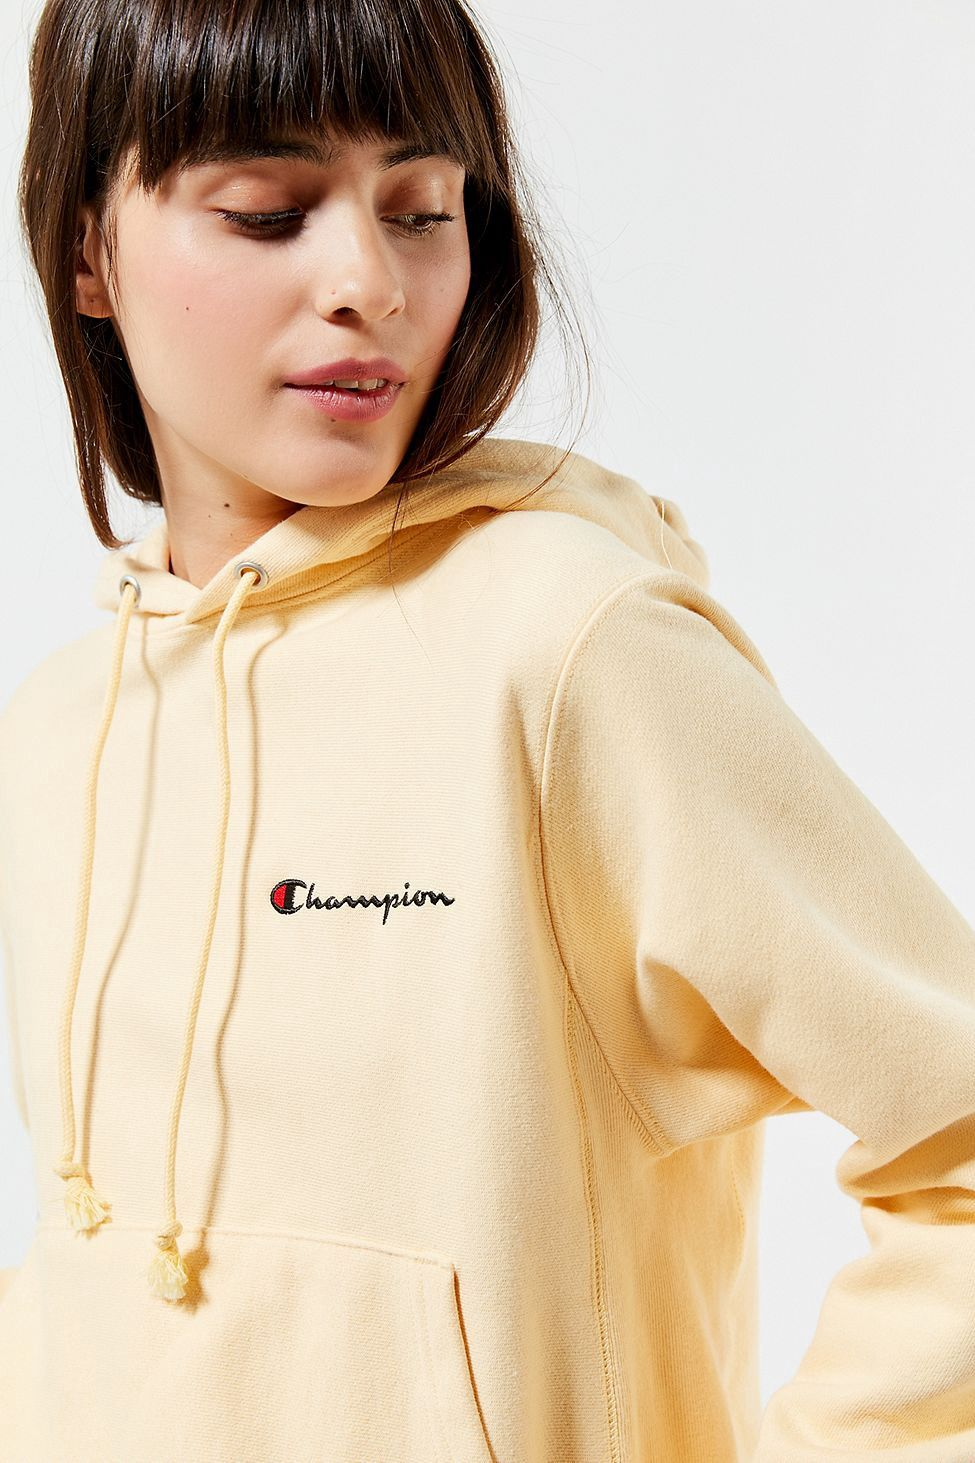 Urban Outfitters Champion & Uo Arm Logo Hoodie Sweatshirt